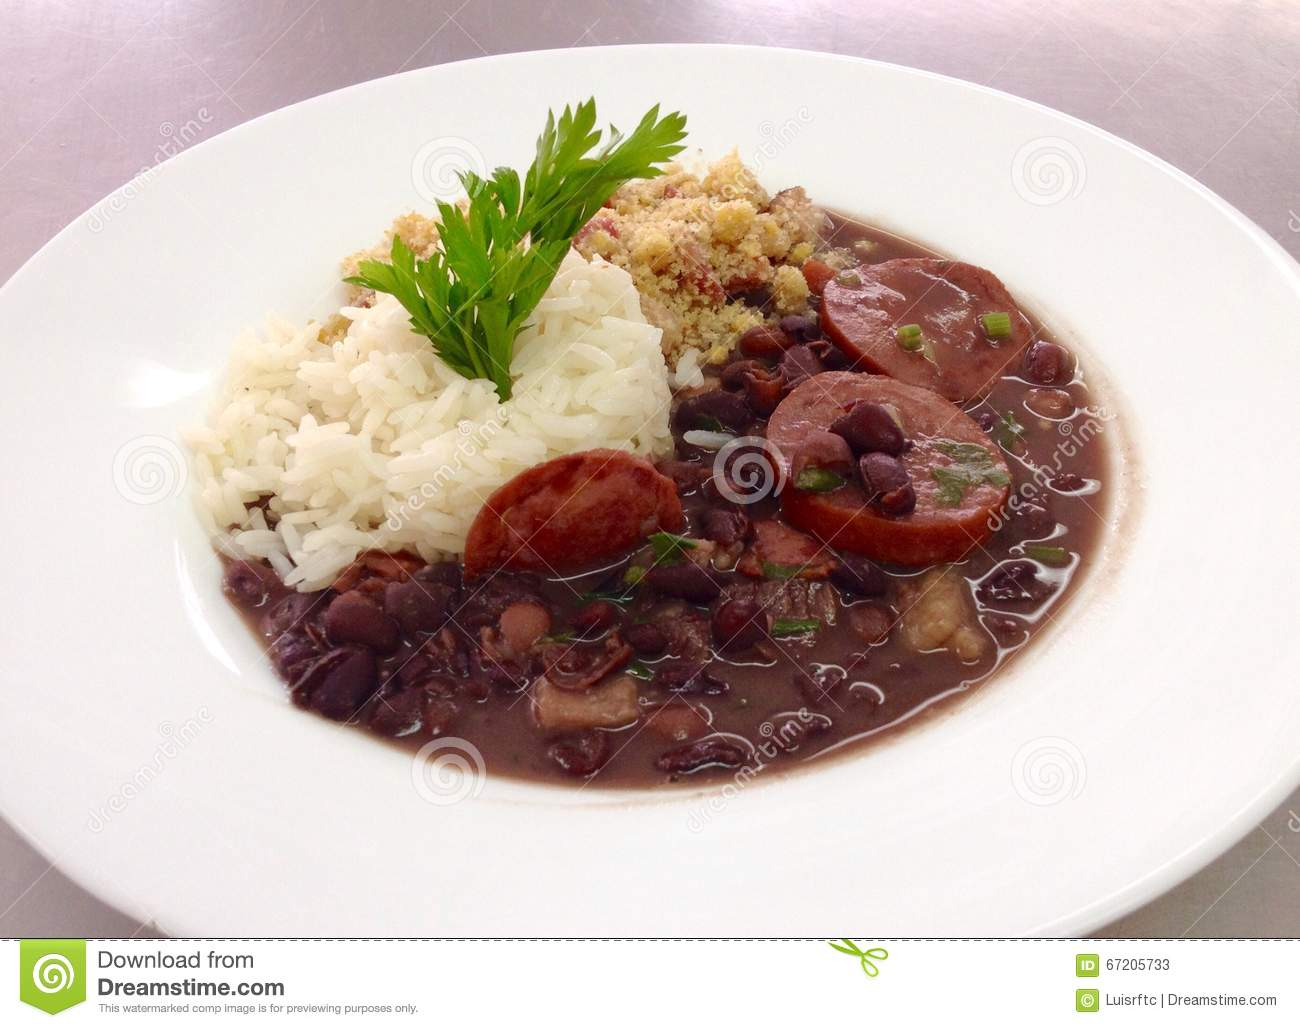 Brazilian Feijoada Stock Photo - Image: 67205733